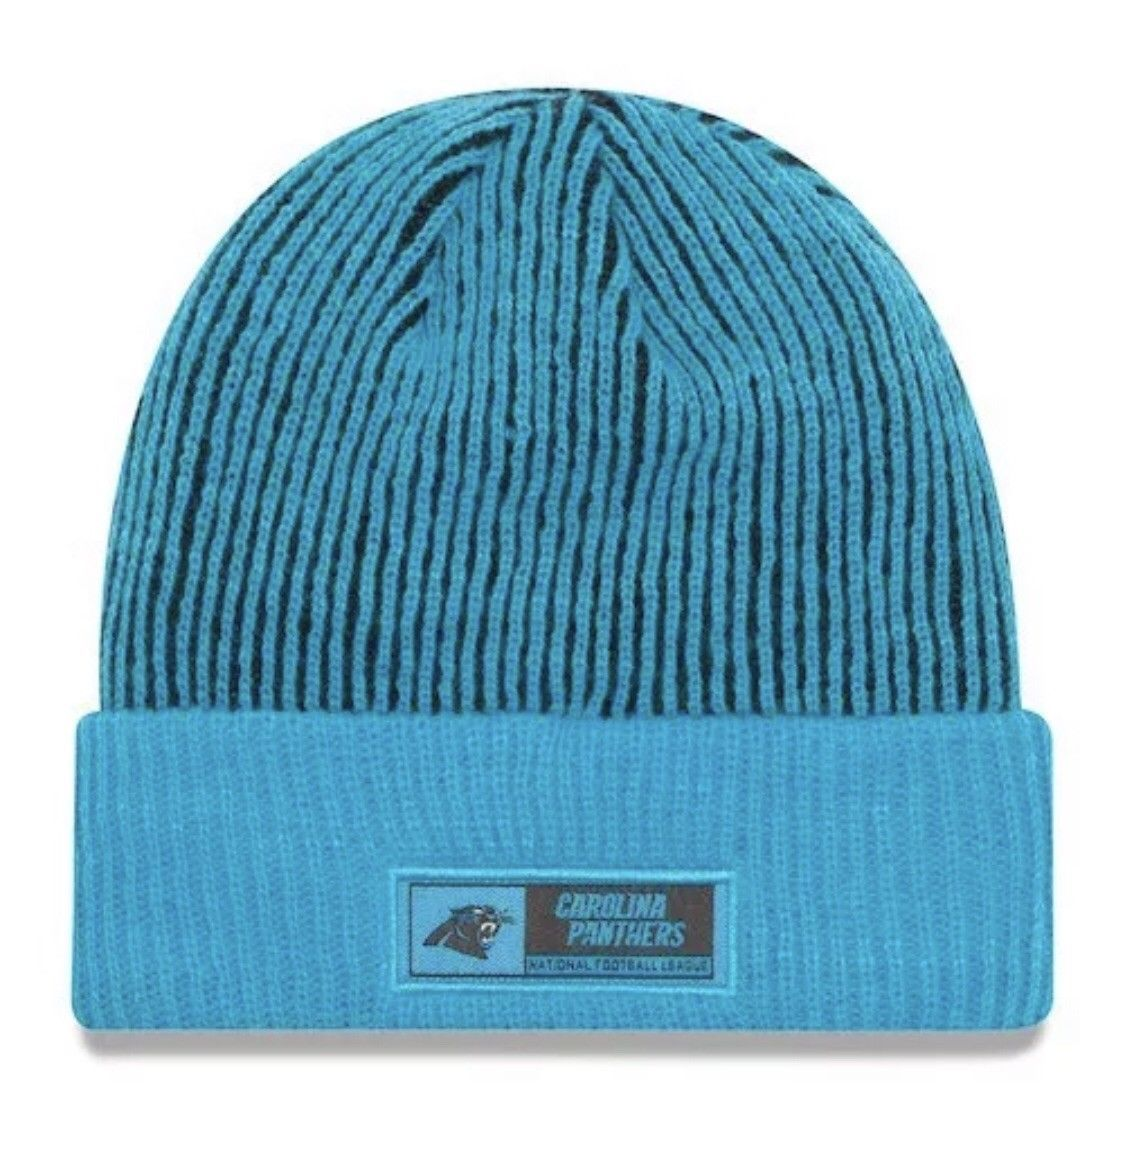 Carolina Panthers New Era Knit Hat On Field Tech Beanie Stocking Cap-OSFM $25!!